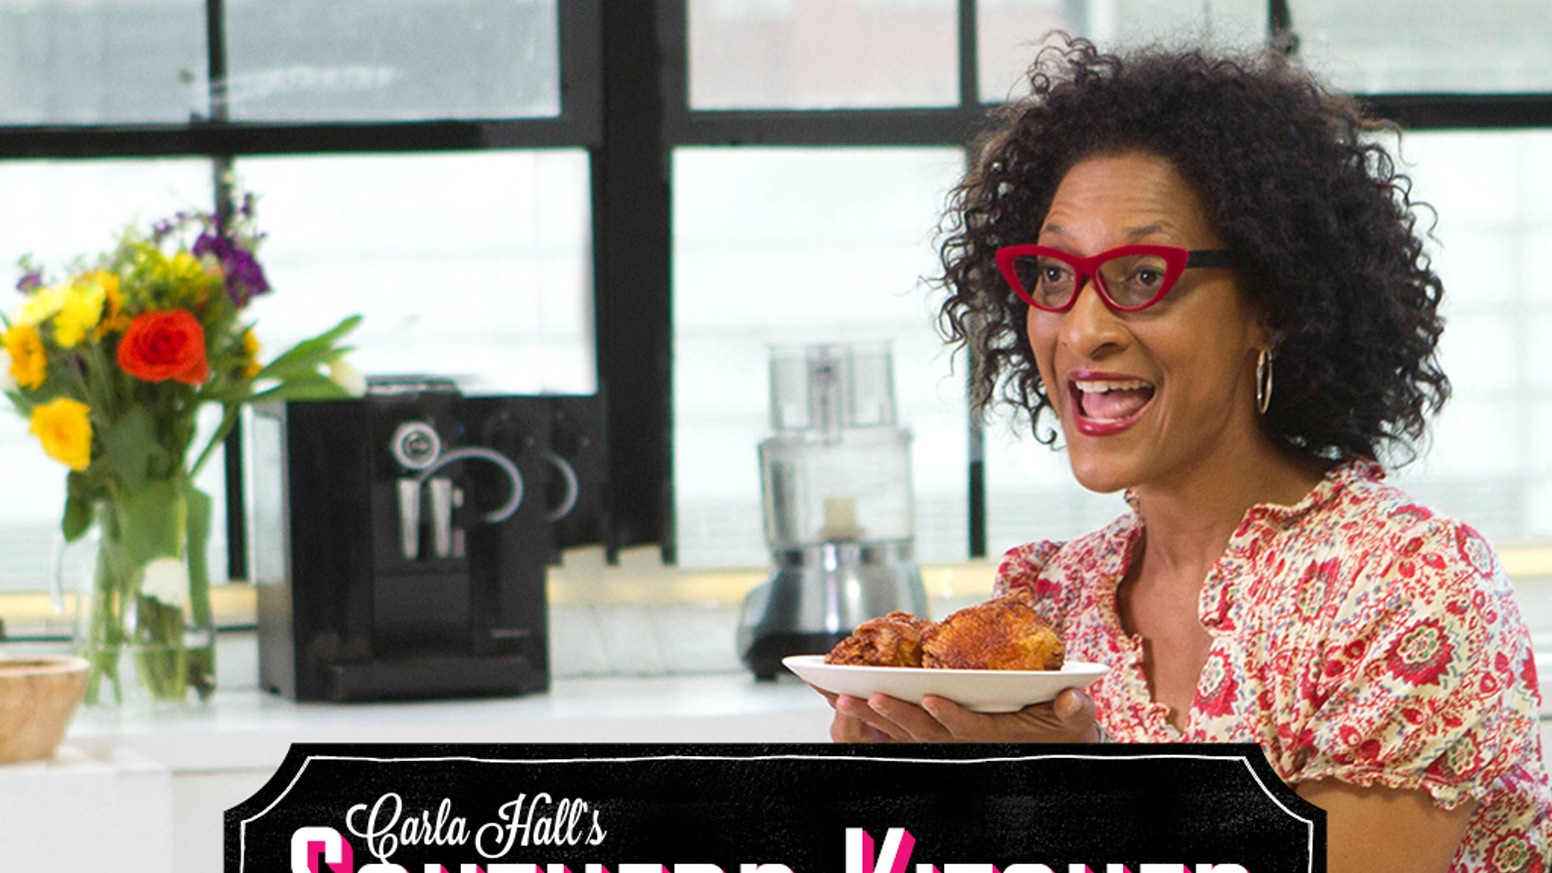 Carla Hall's Southern Kitchen by Carla Hall » Location